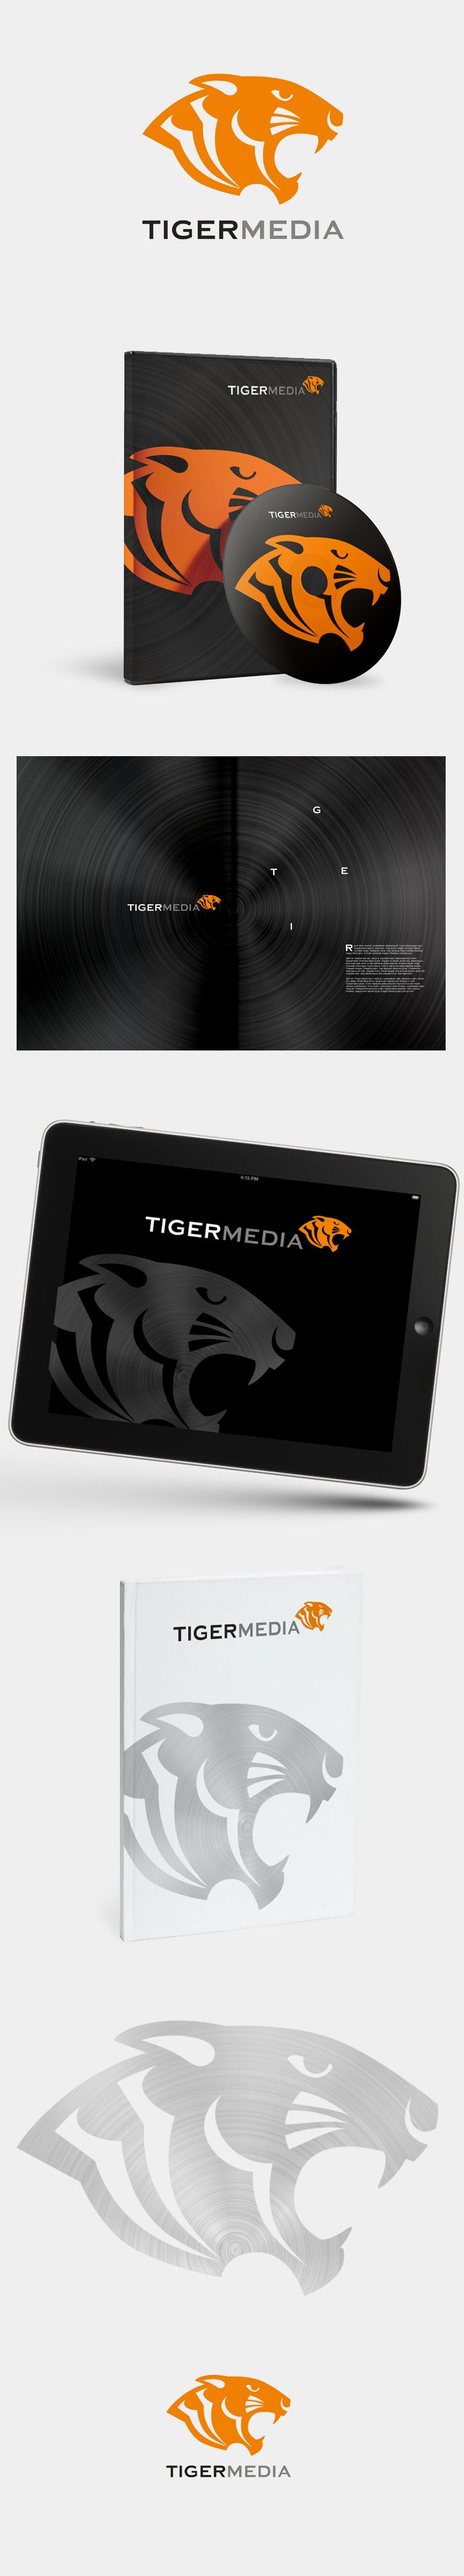 We just designed a brand new corporate identity for Tiger Media, hope you'll enjoy!